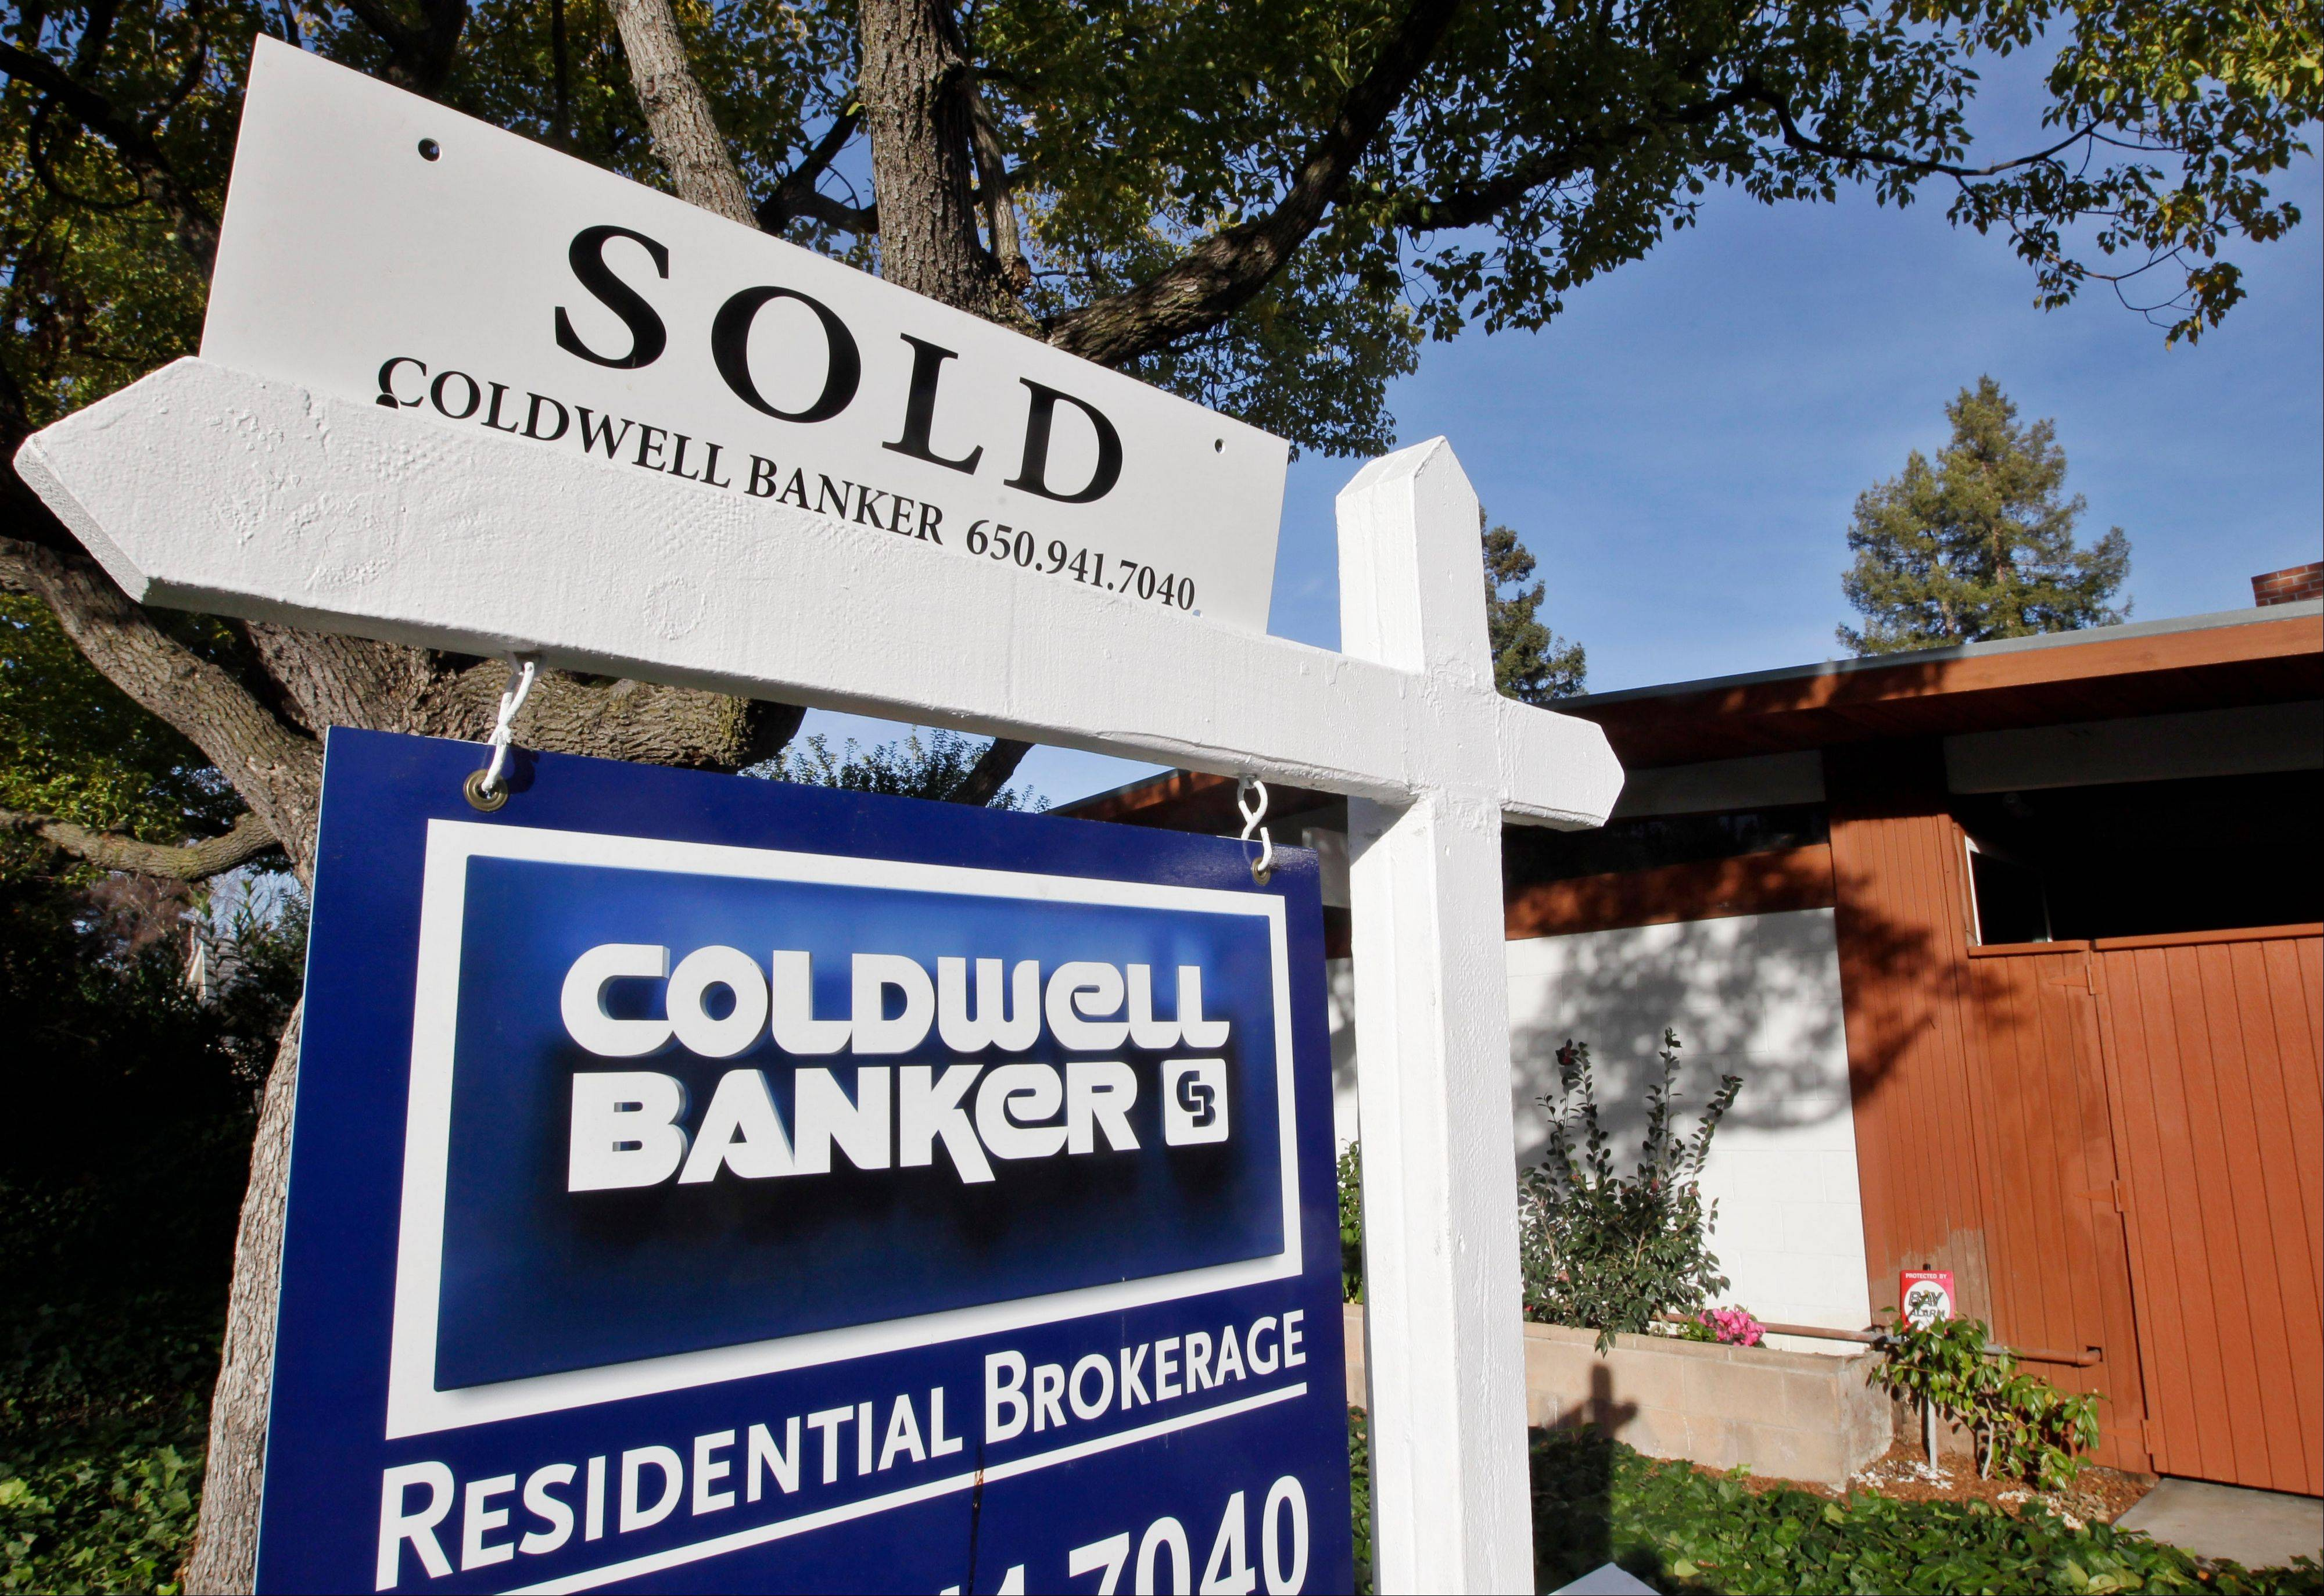 Home prices kept rising in July across the United States, buoyed by greater sales and fewer foreclosures.